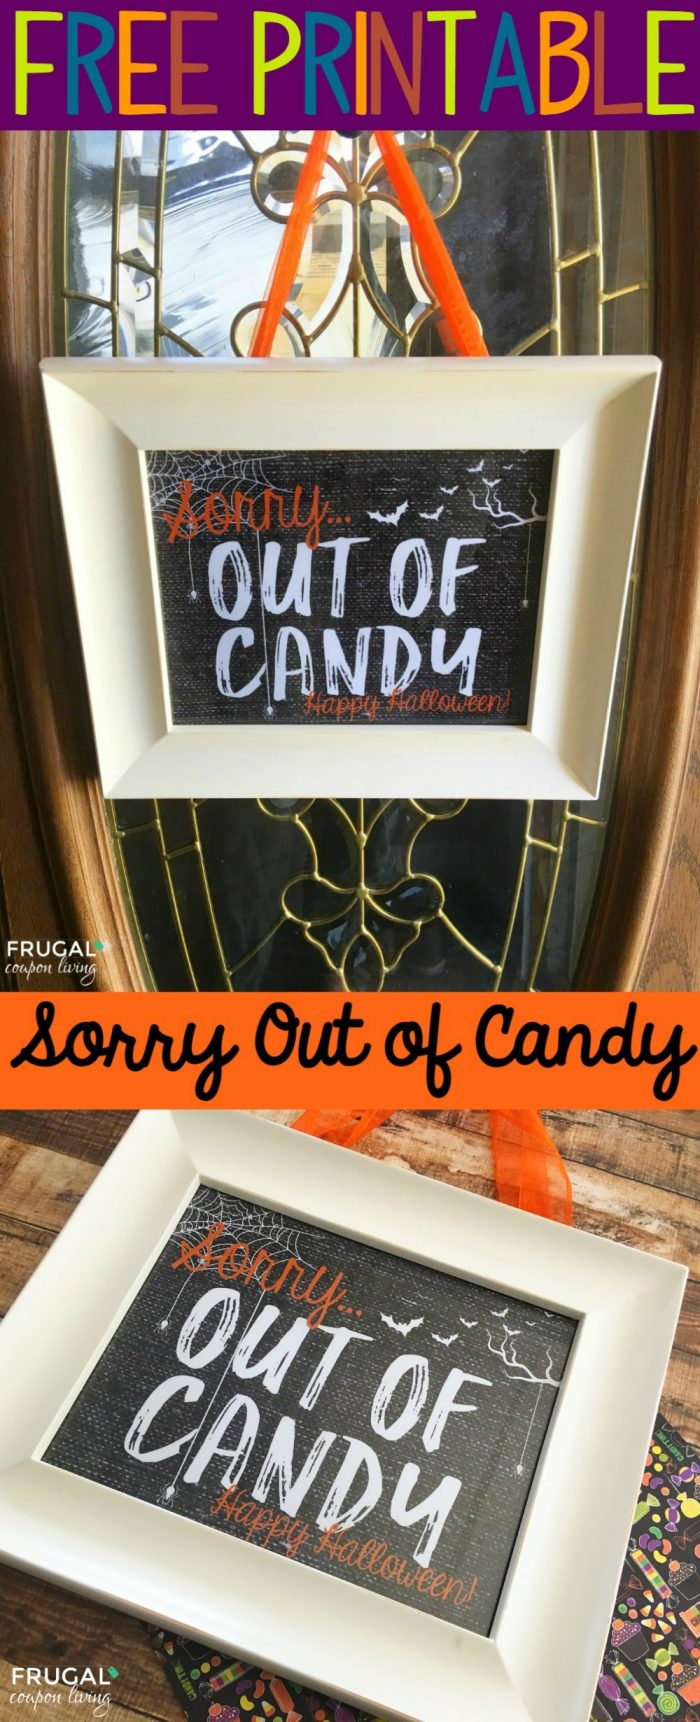 Sorry-Out-of-Candy-Halloween-Printable-Sign-Frugal-Coupon-Living-long